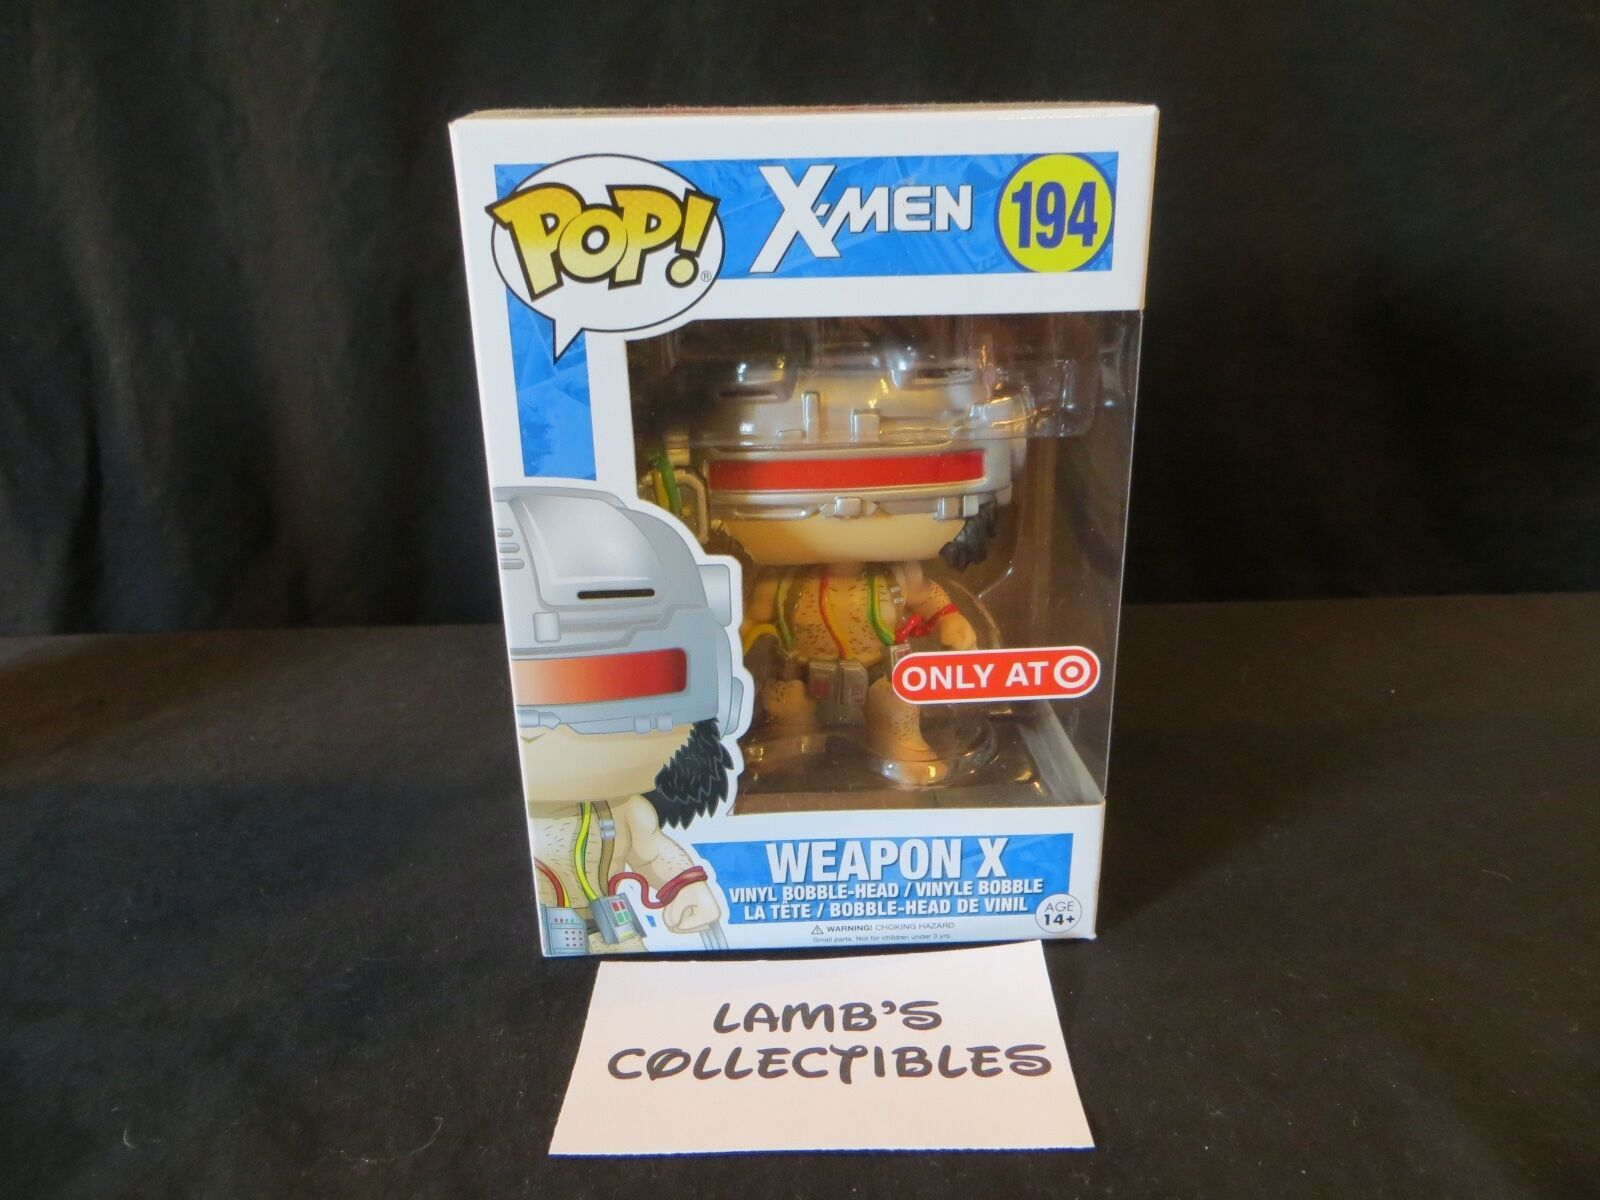 Primary image for Funko Pop! Weapon X Target exclusive X-men wolverine #194 vinyl bobble head fig